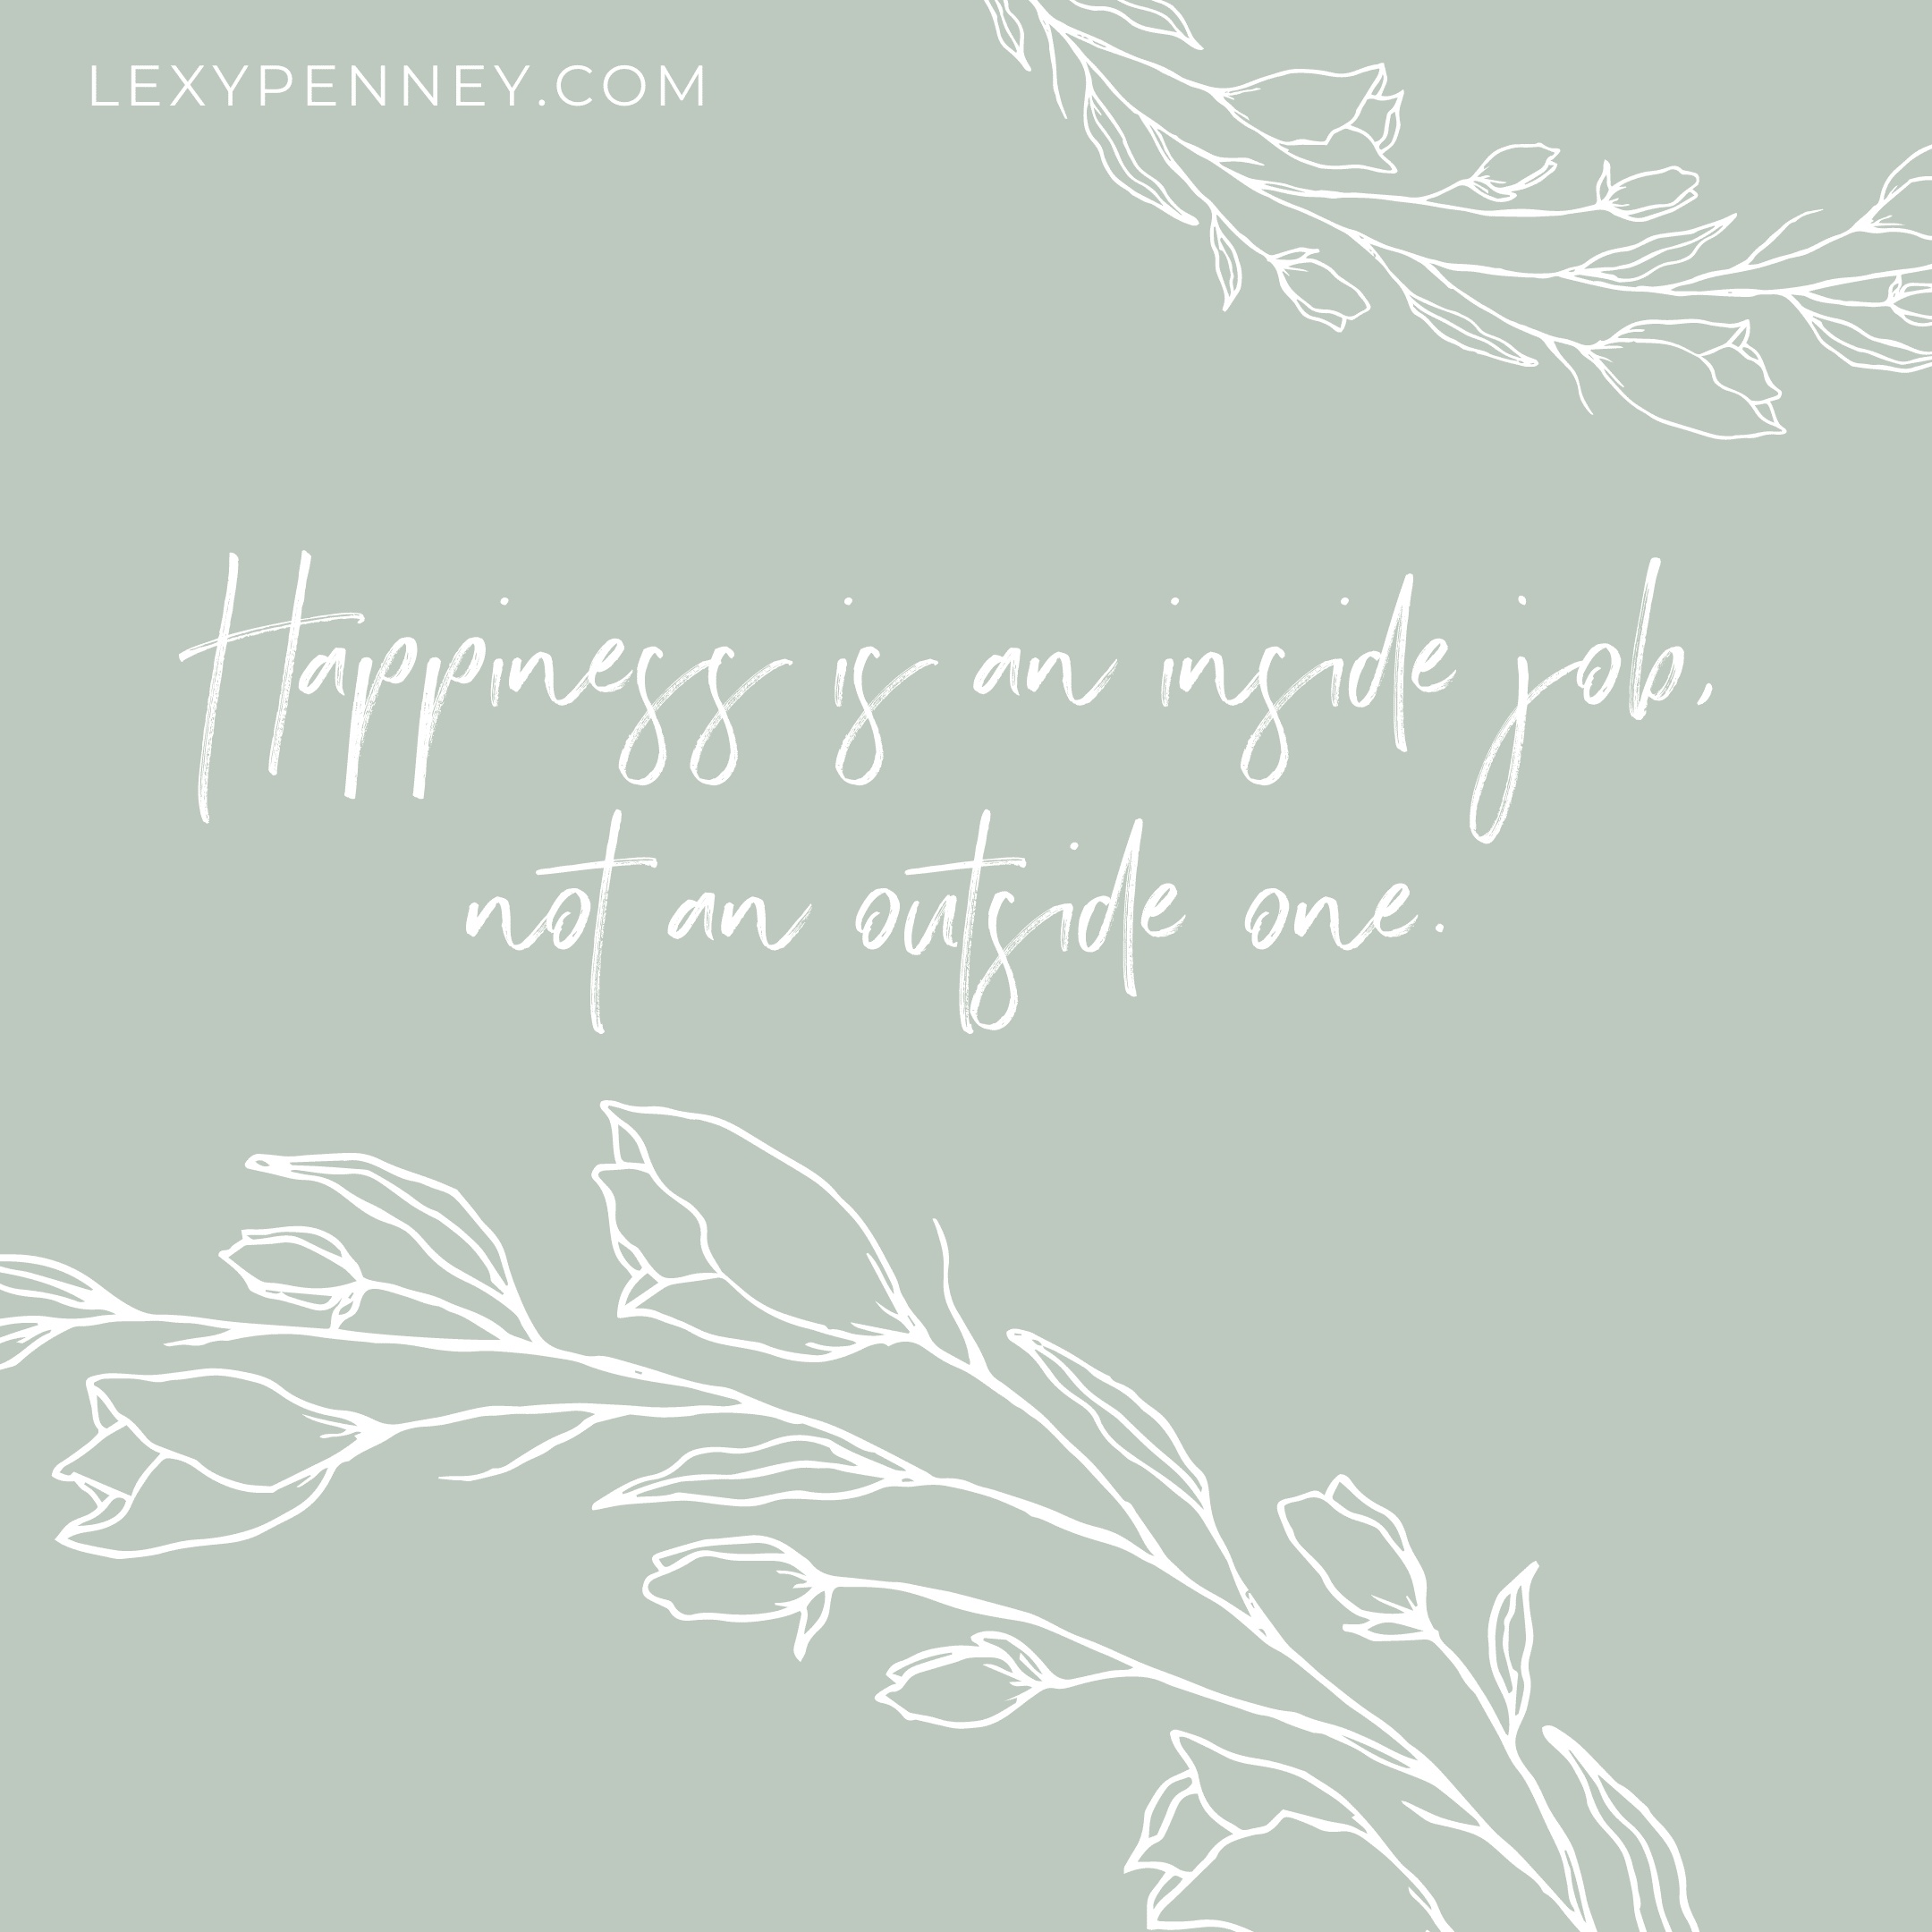 happiness is an inside job not an outside one